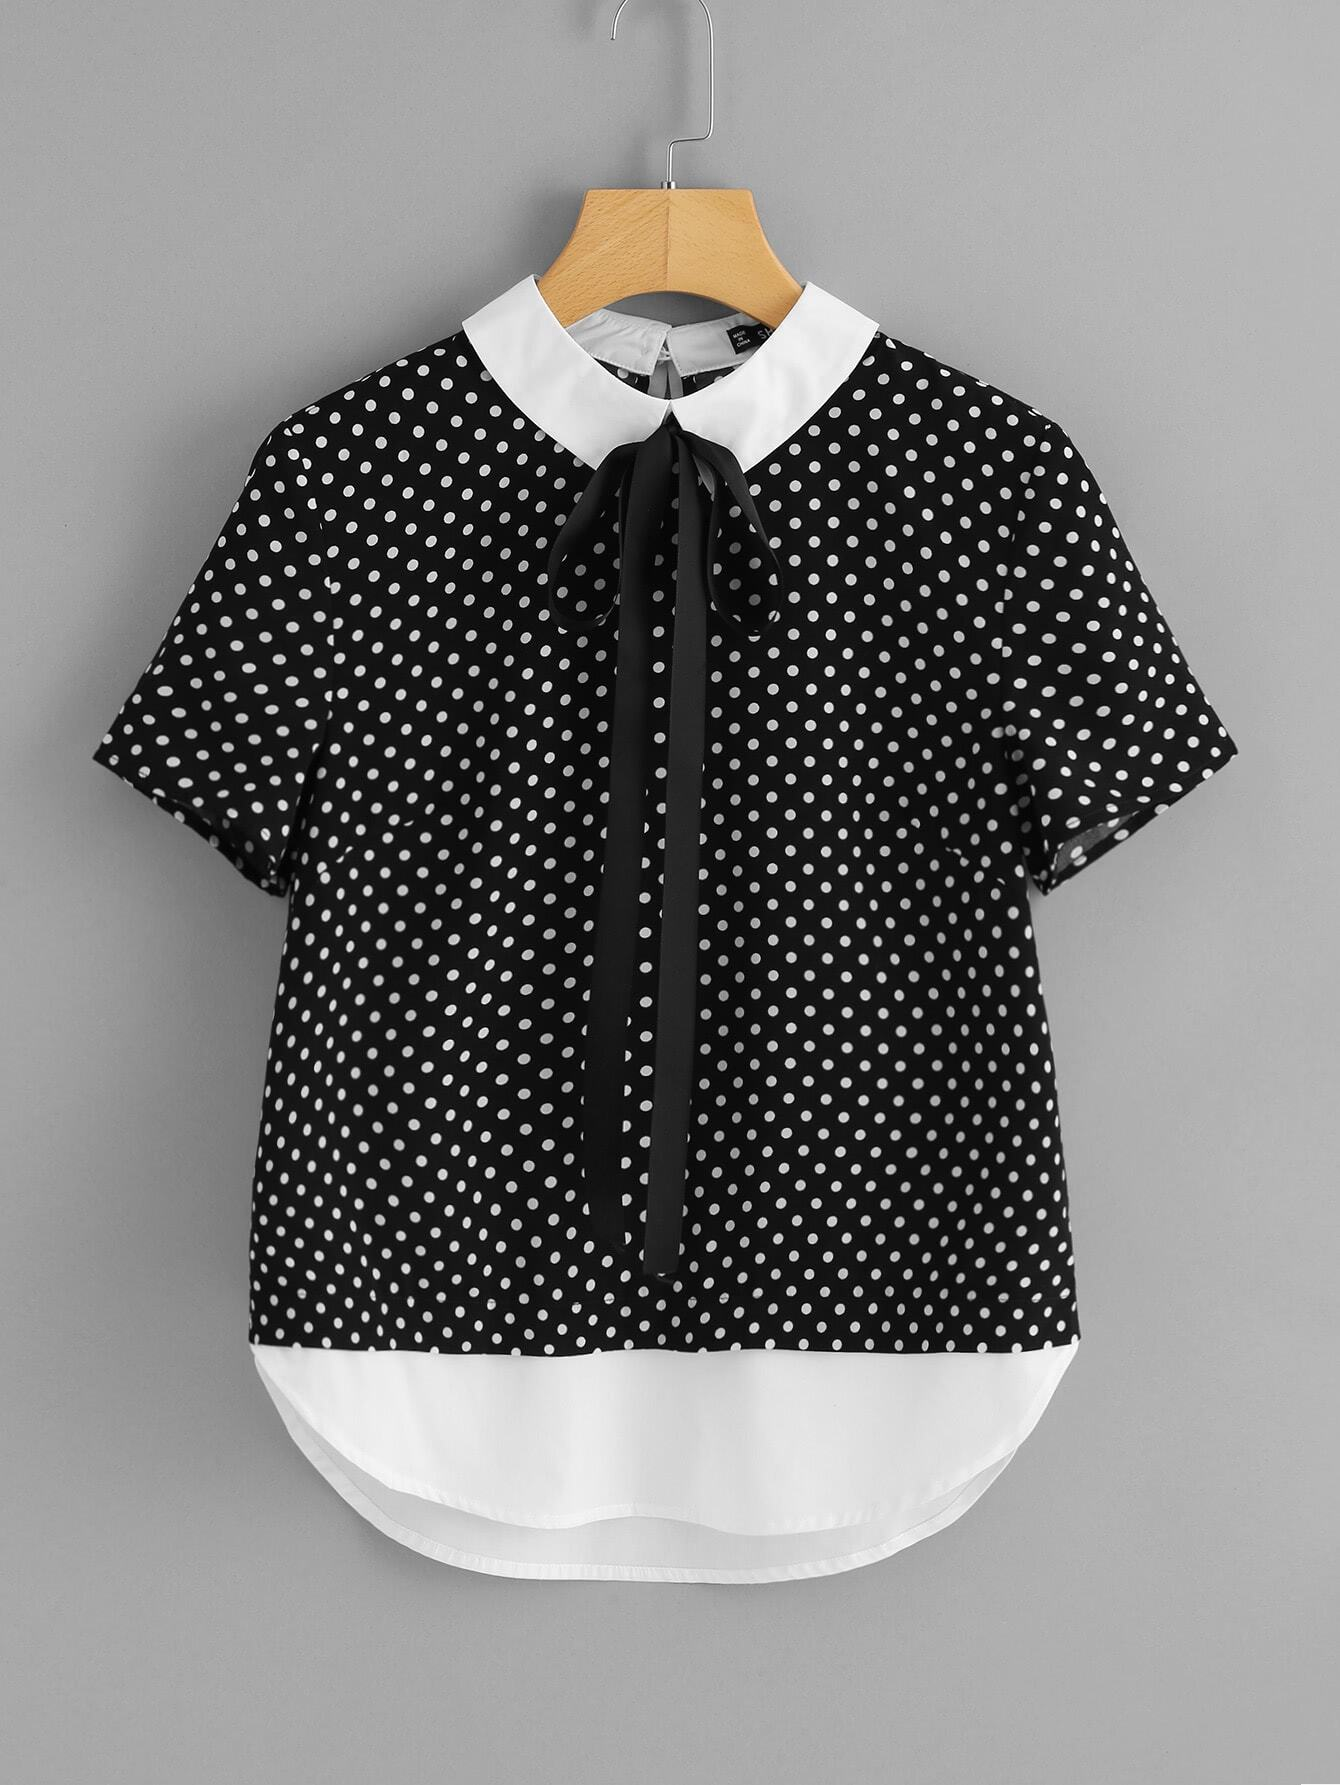 Contrast Collar And Hem Polka Dot Top polka dot slit hem contrast dress